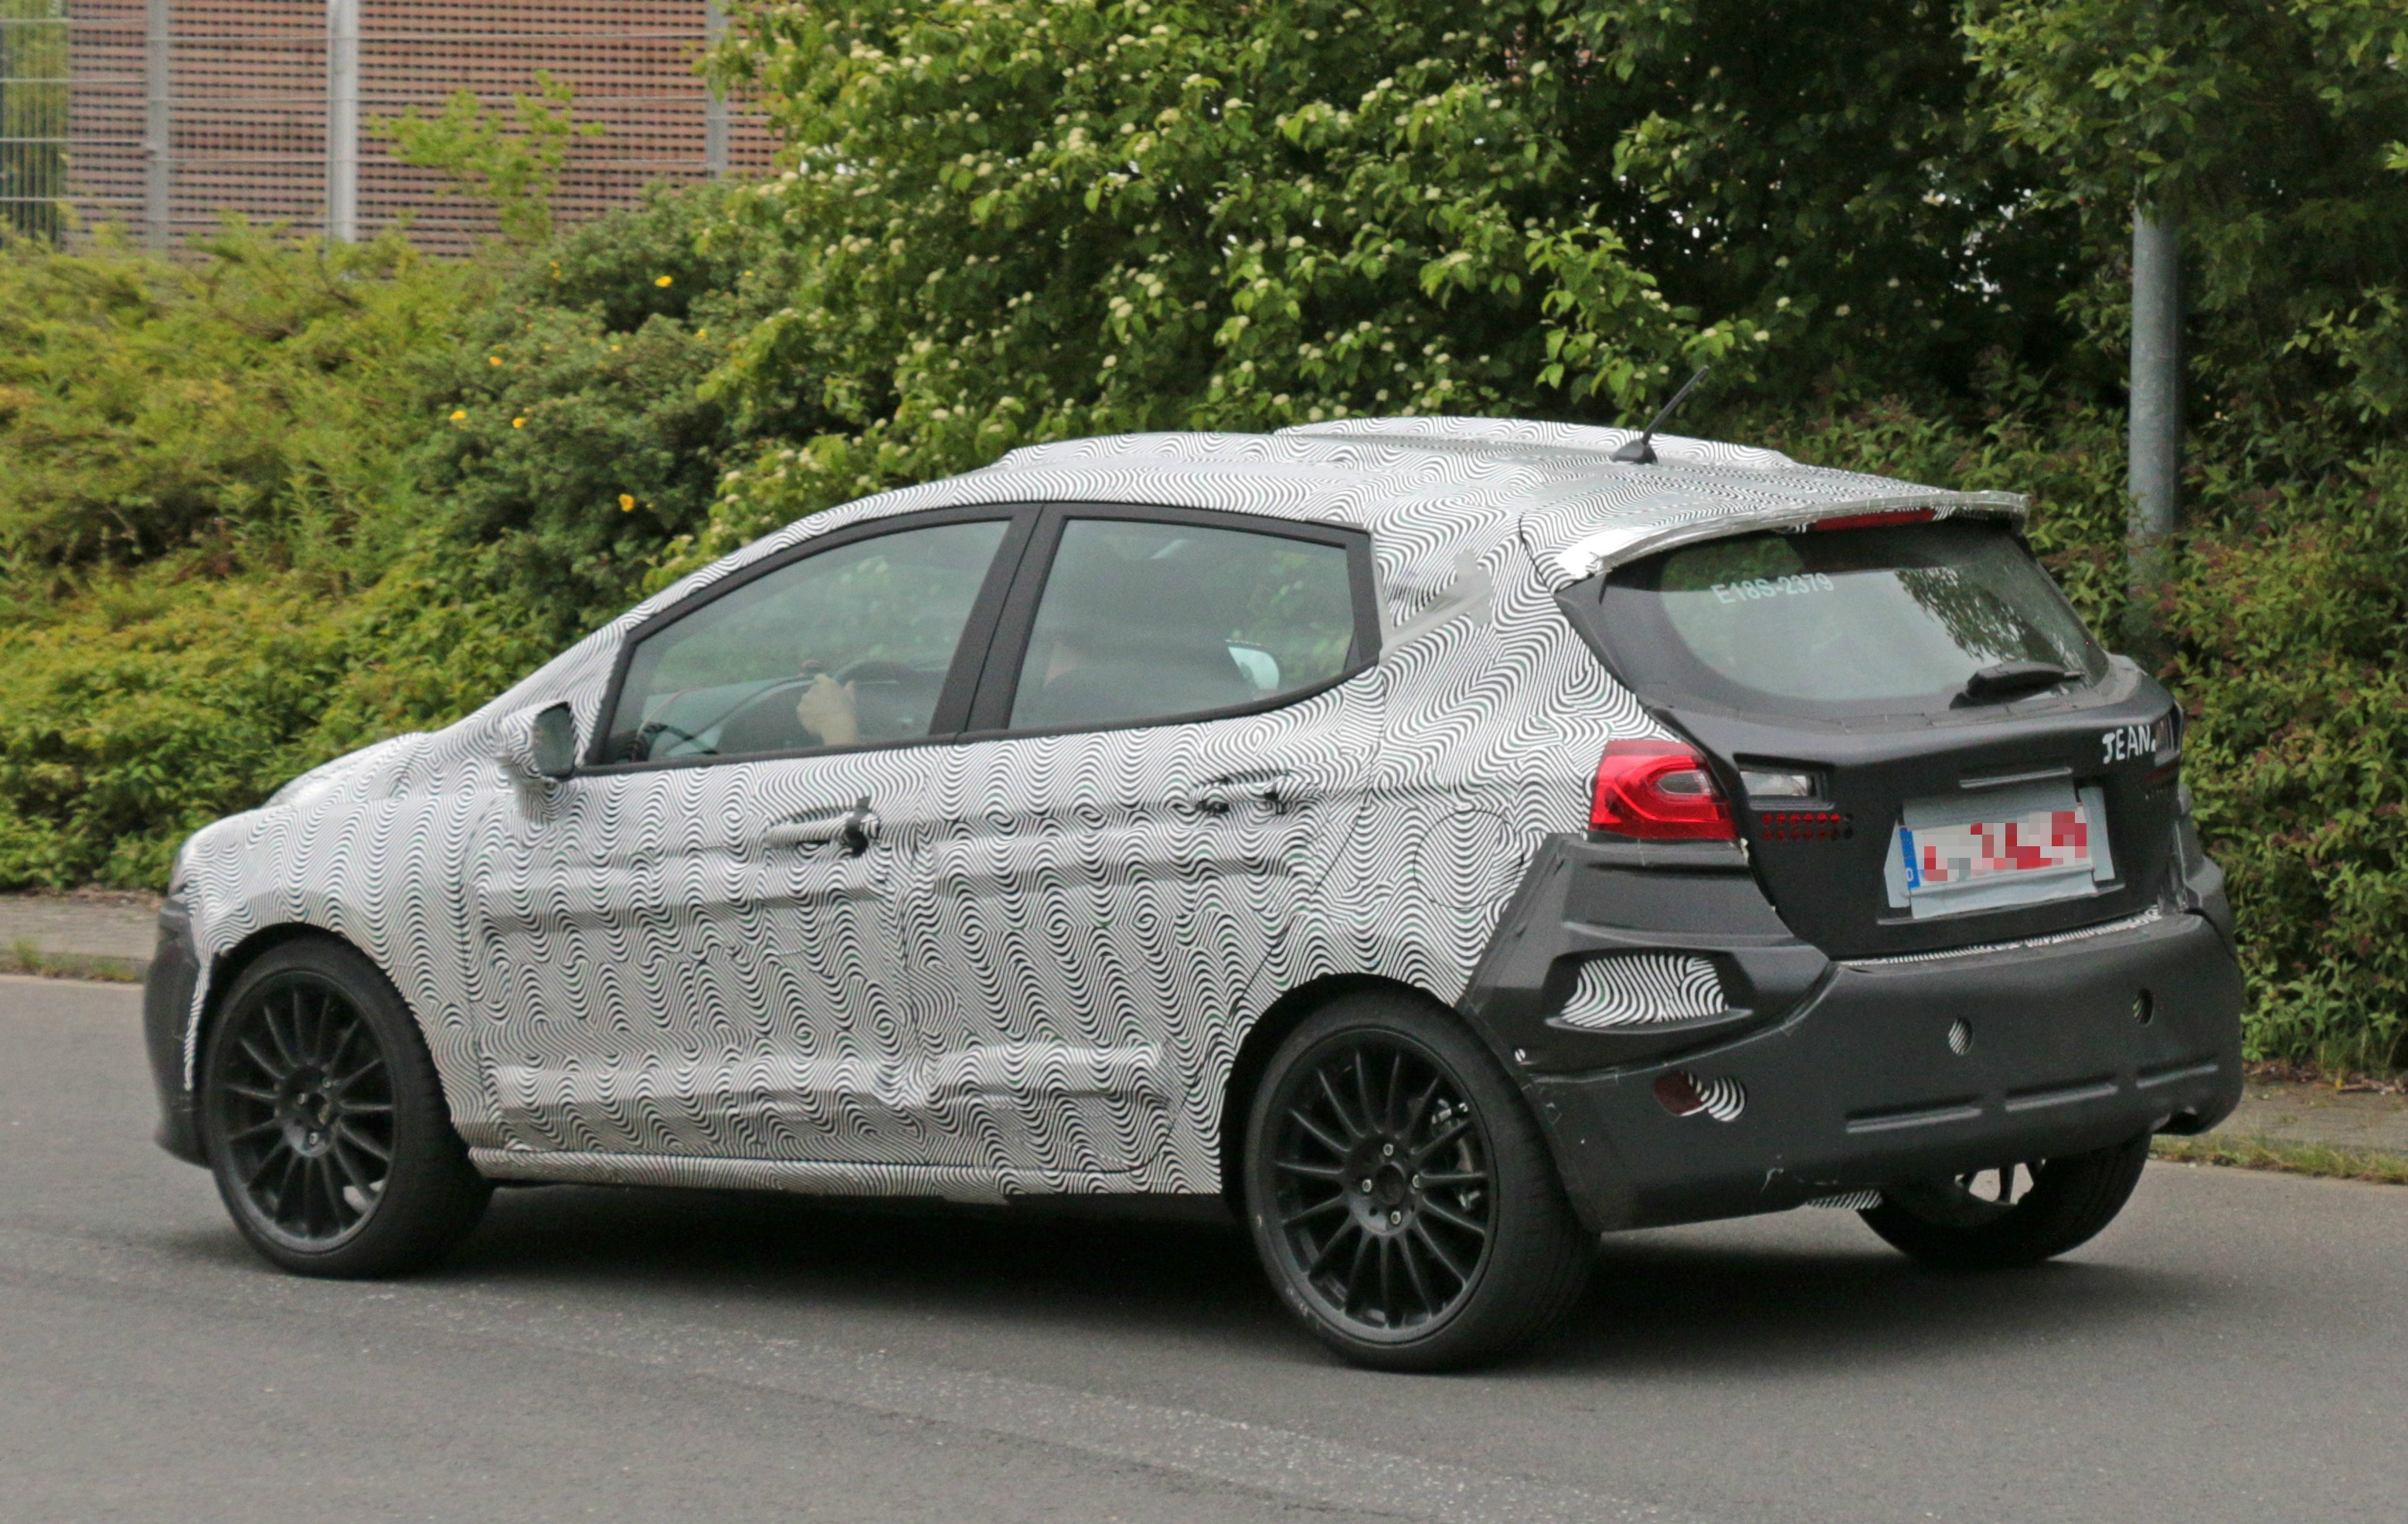 2018 ford fiesta st spied benchmarking against current fiesta st autoevolution